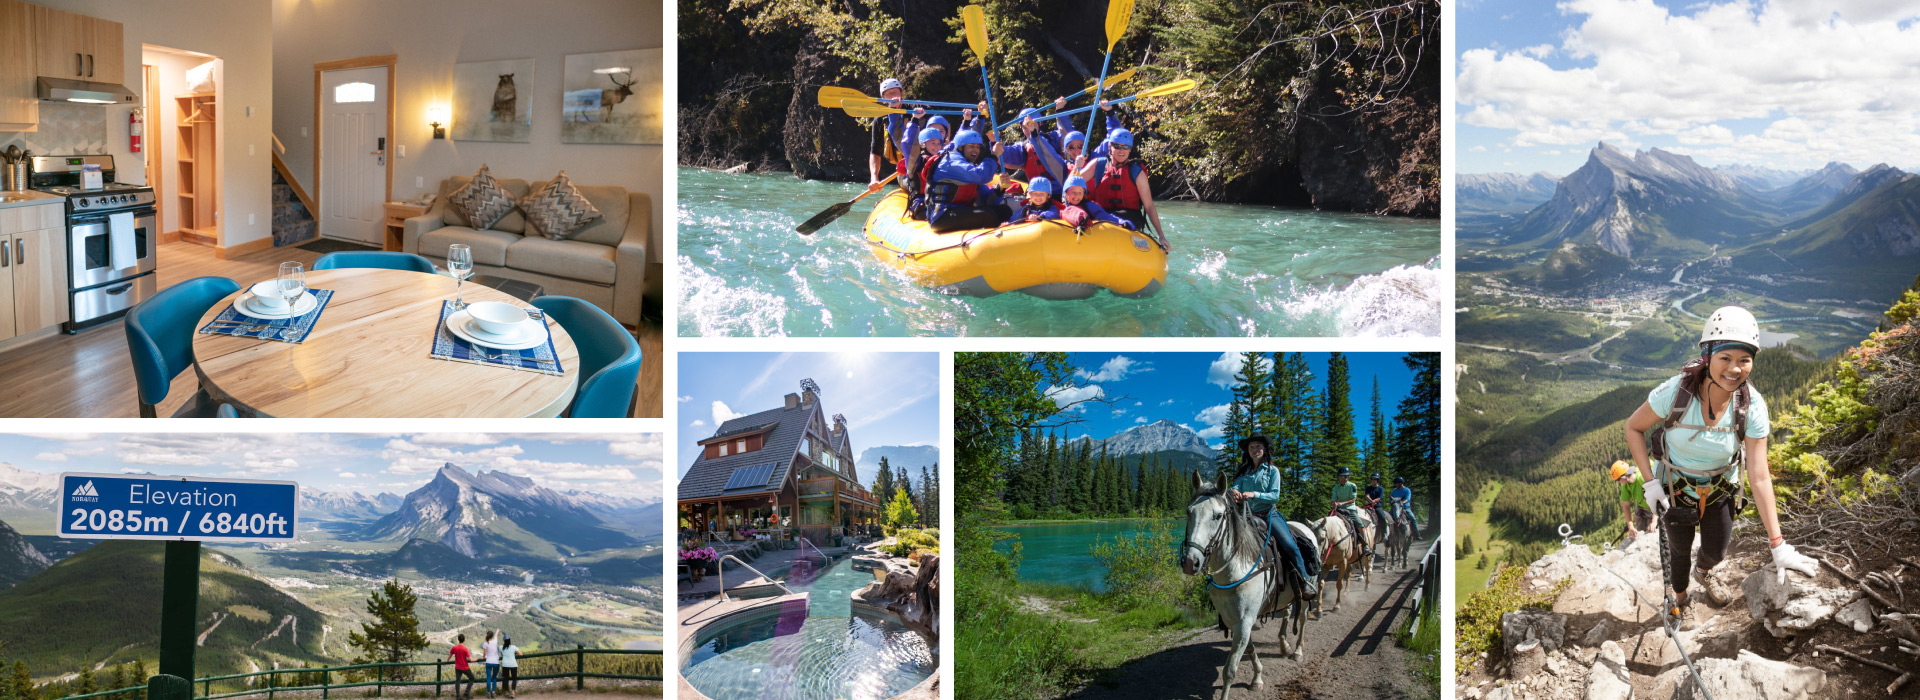 Banff Summer Package